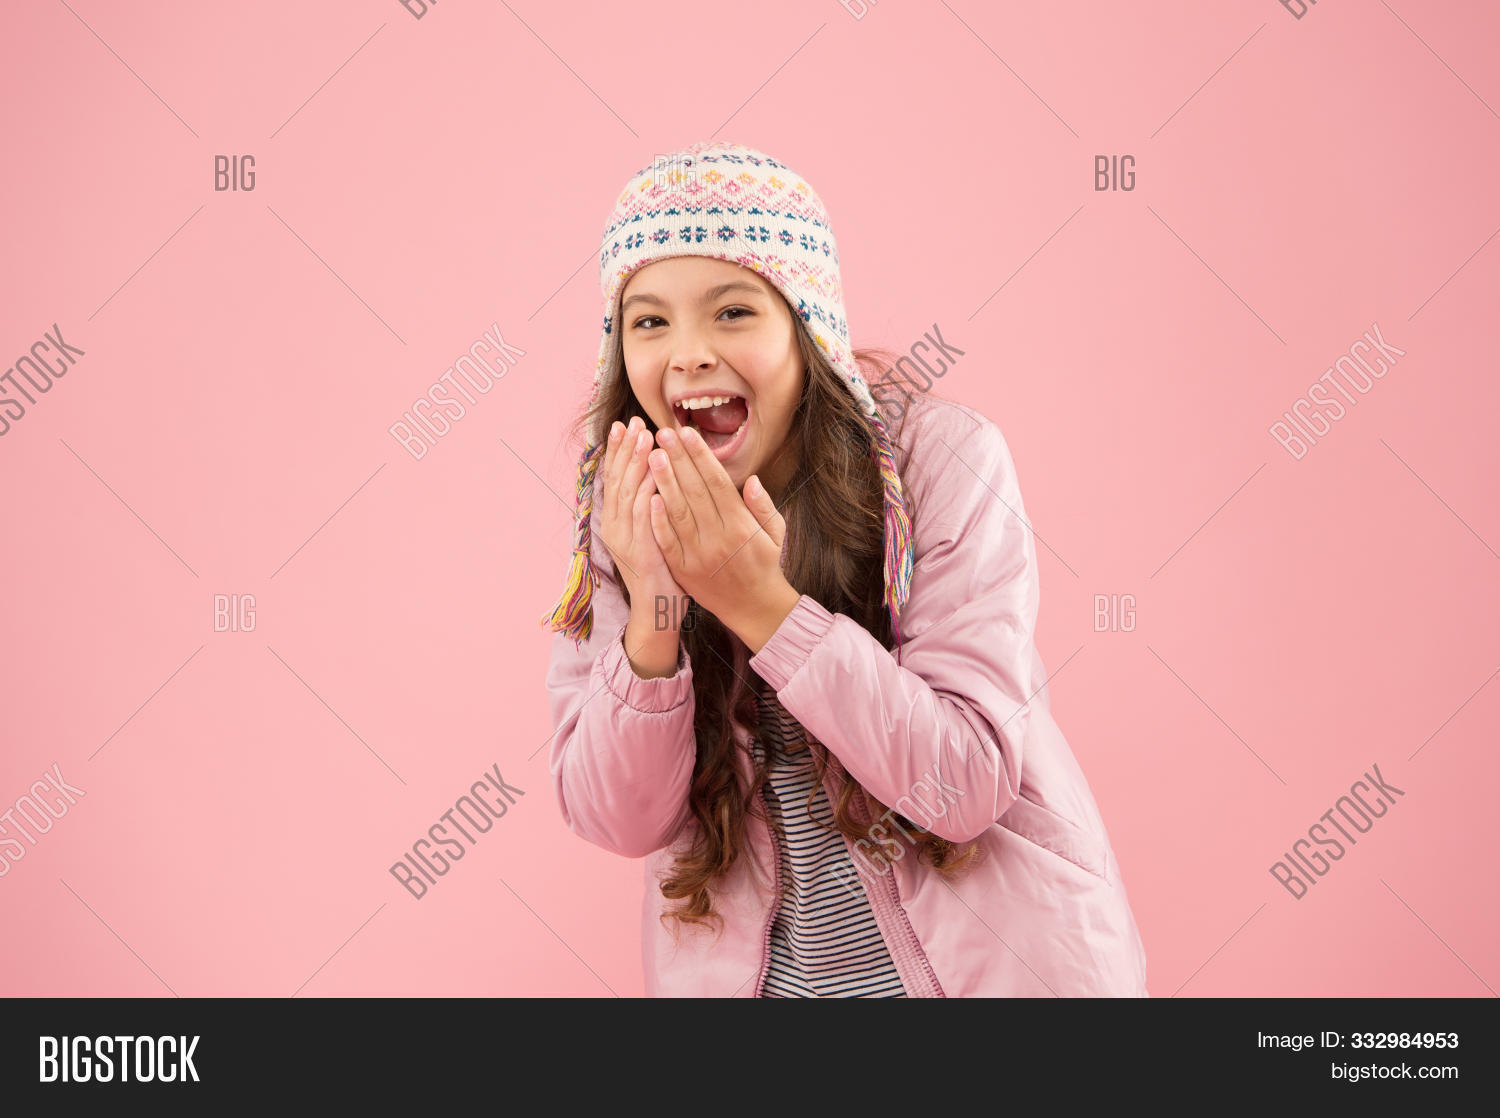 Winter Outfit. Shopping For Accessories. Cute Smiling Model. Adorable Small Child Wear Winter Knitte